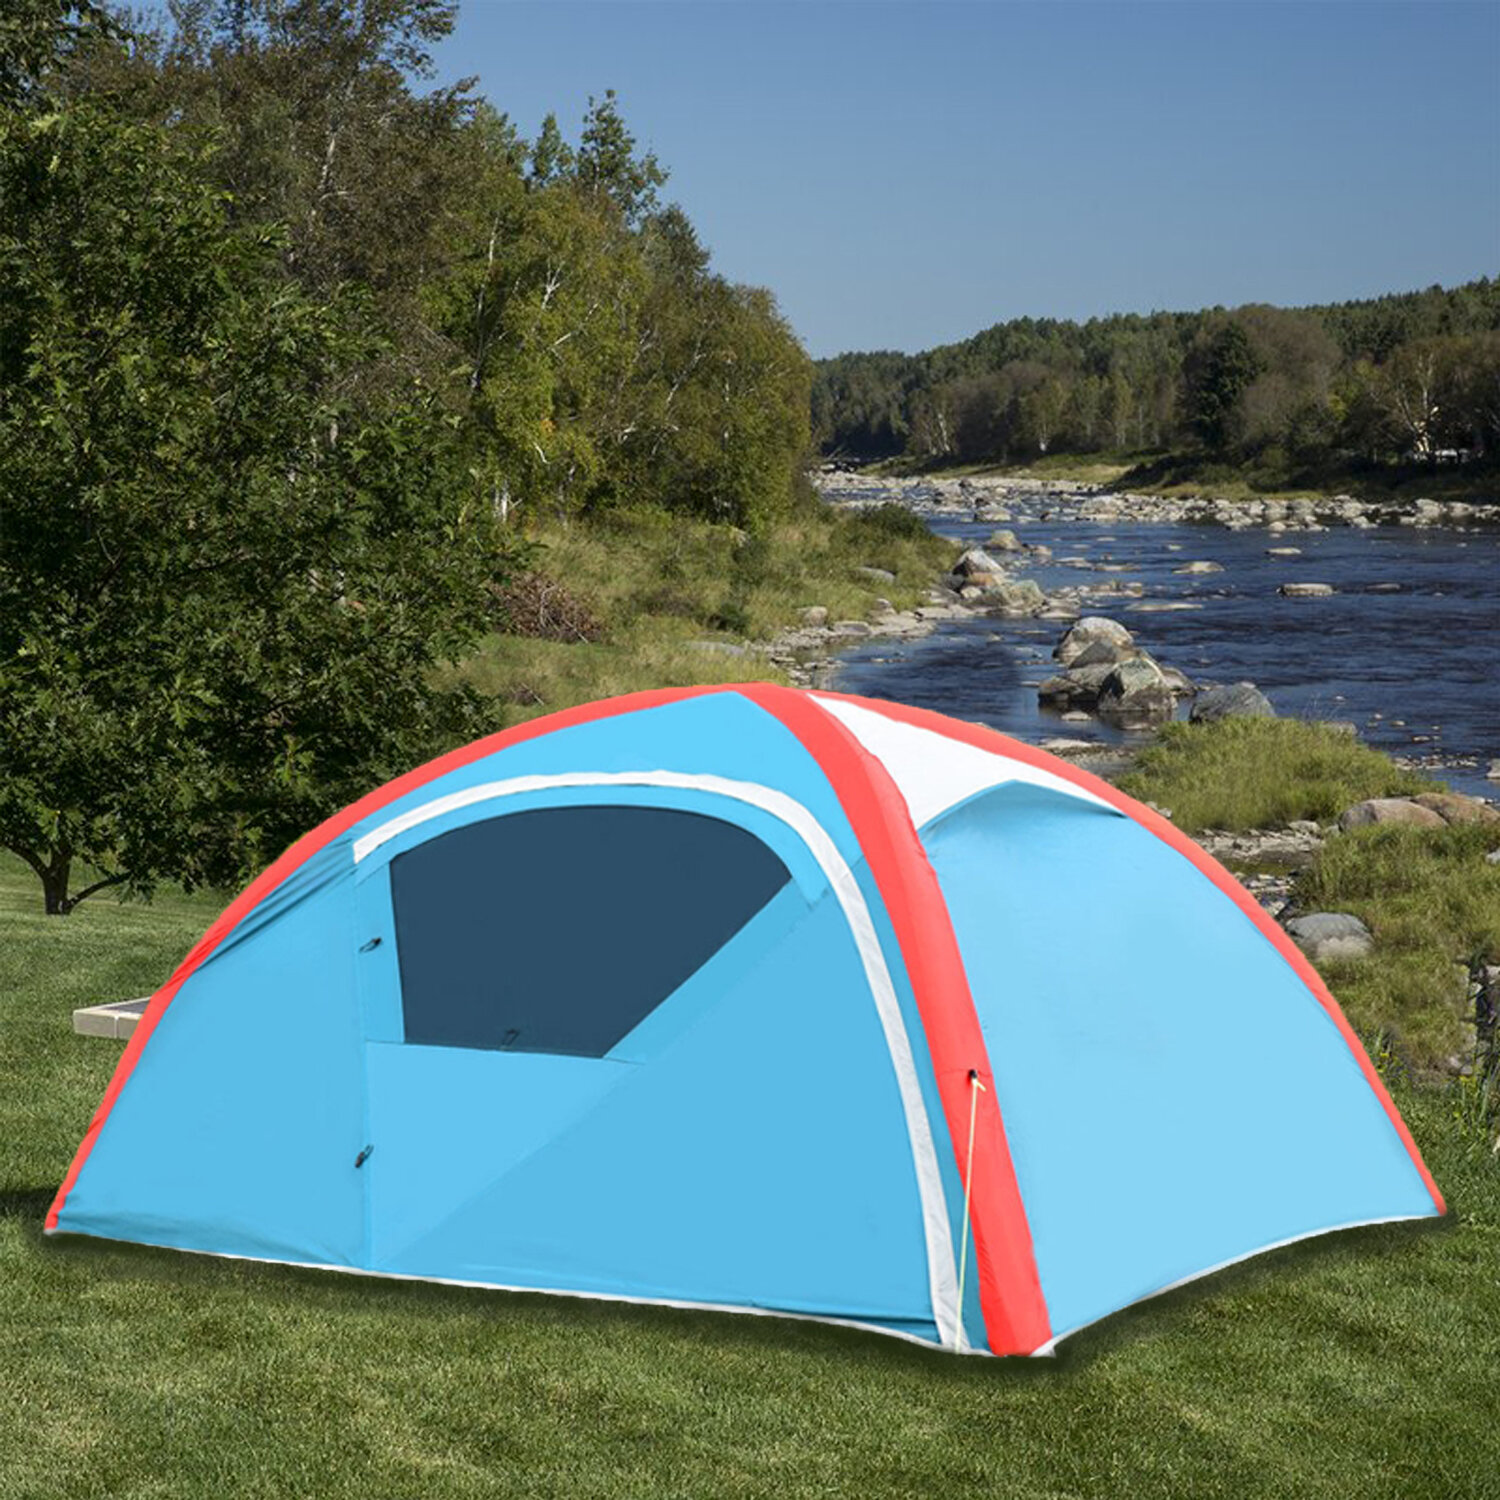 Liviza Inflatable Camping Waterproof 3 Person Tent With Bag And Pump Wayfair